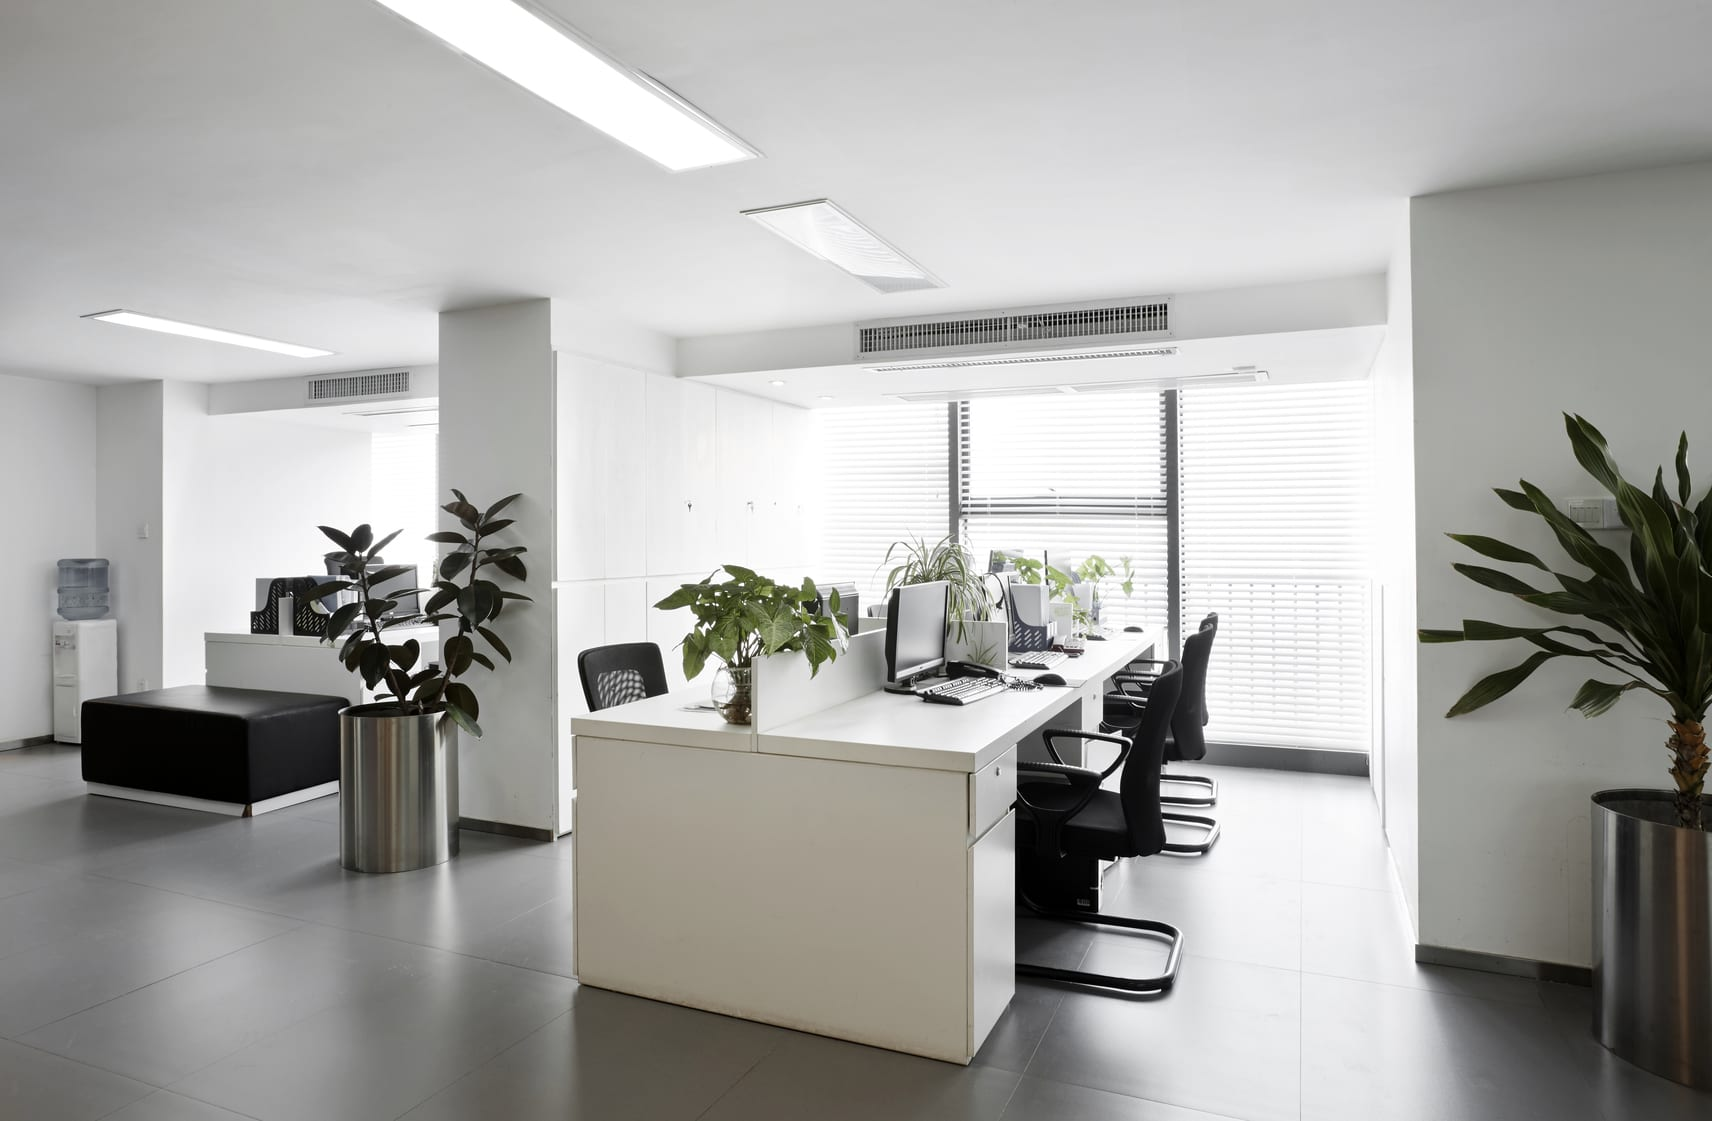 Should You Buy or Lease Your Small Business Office Space?